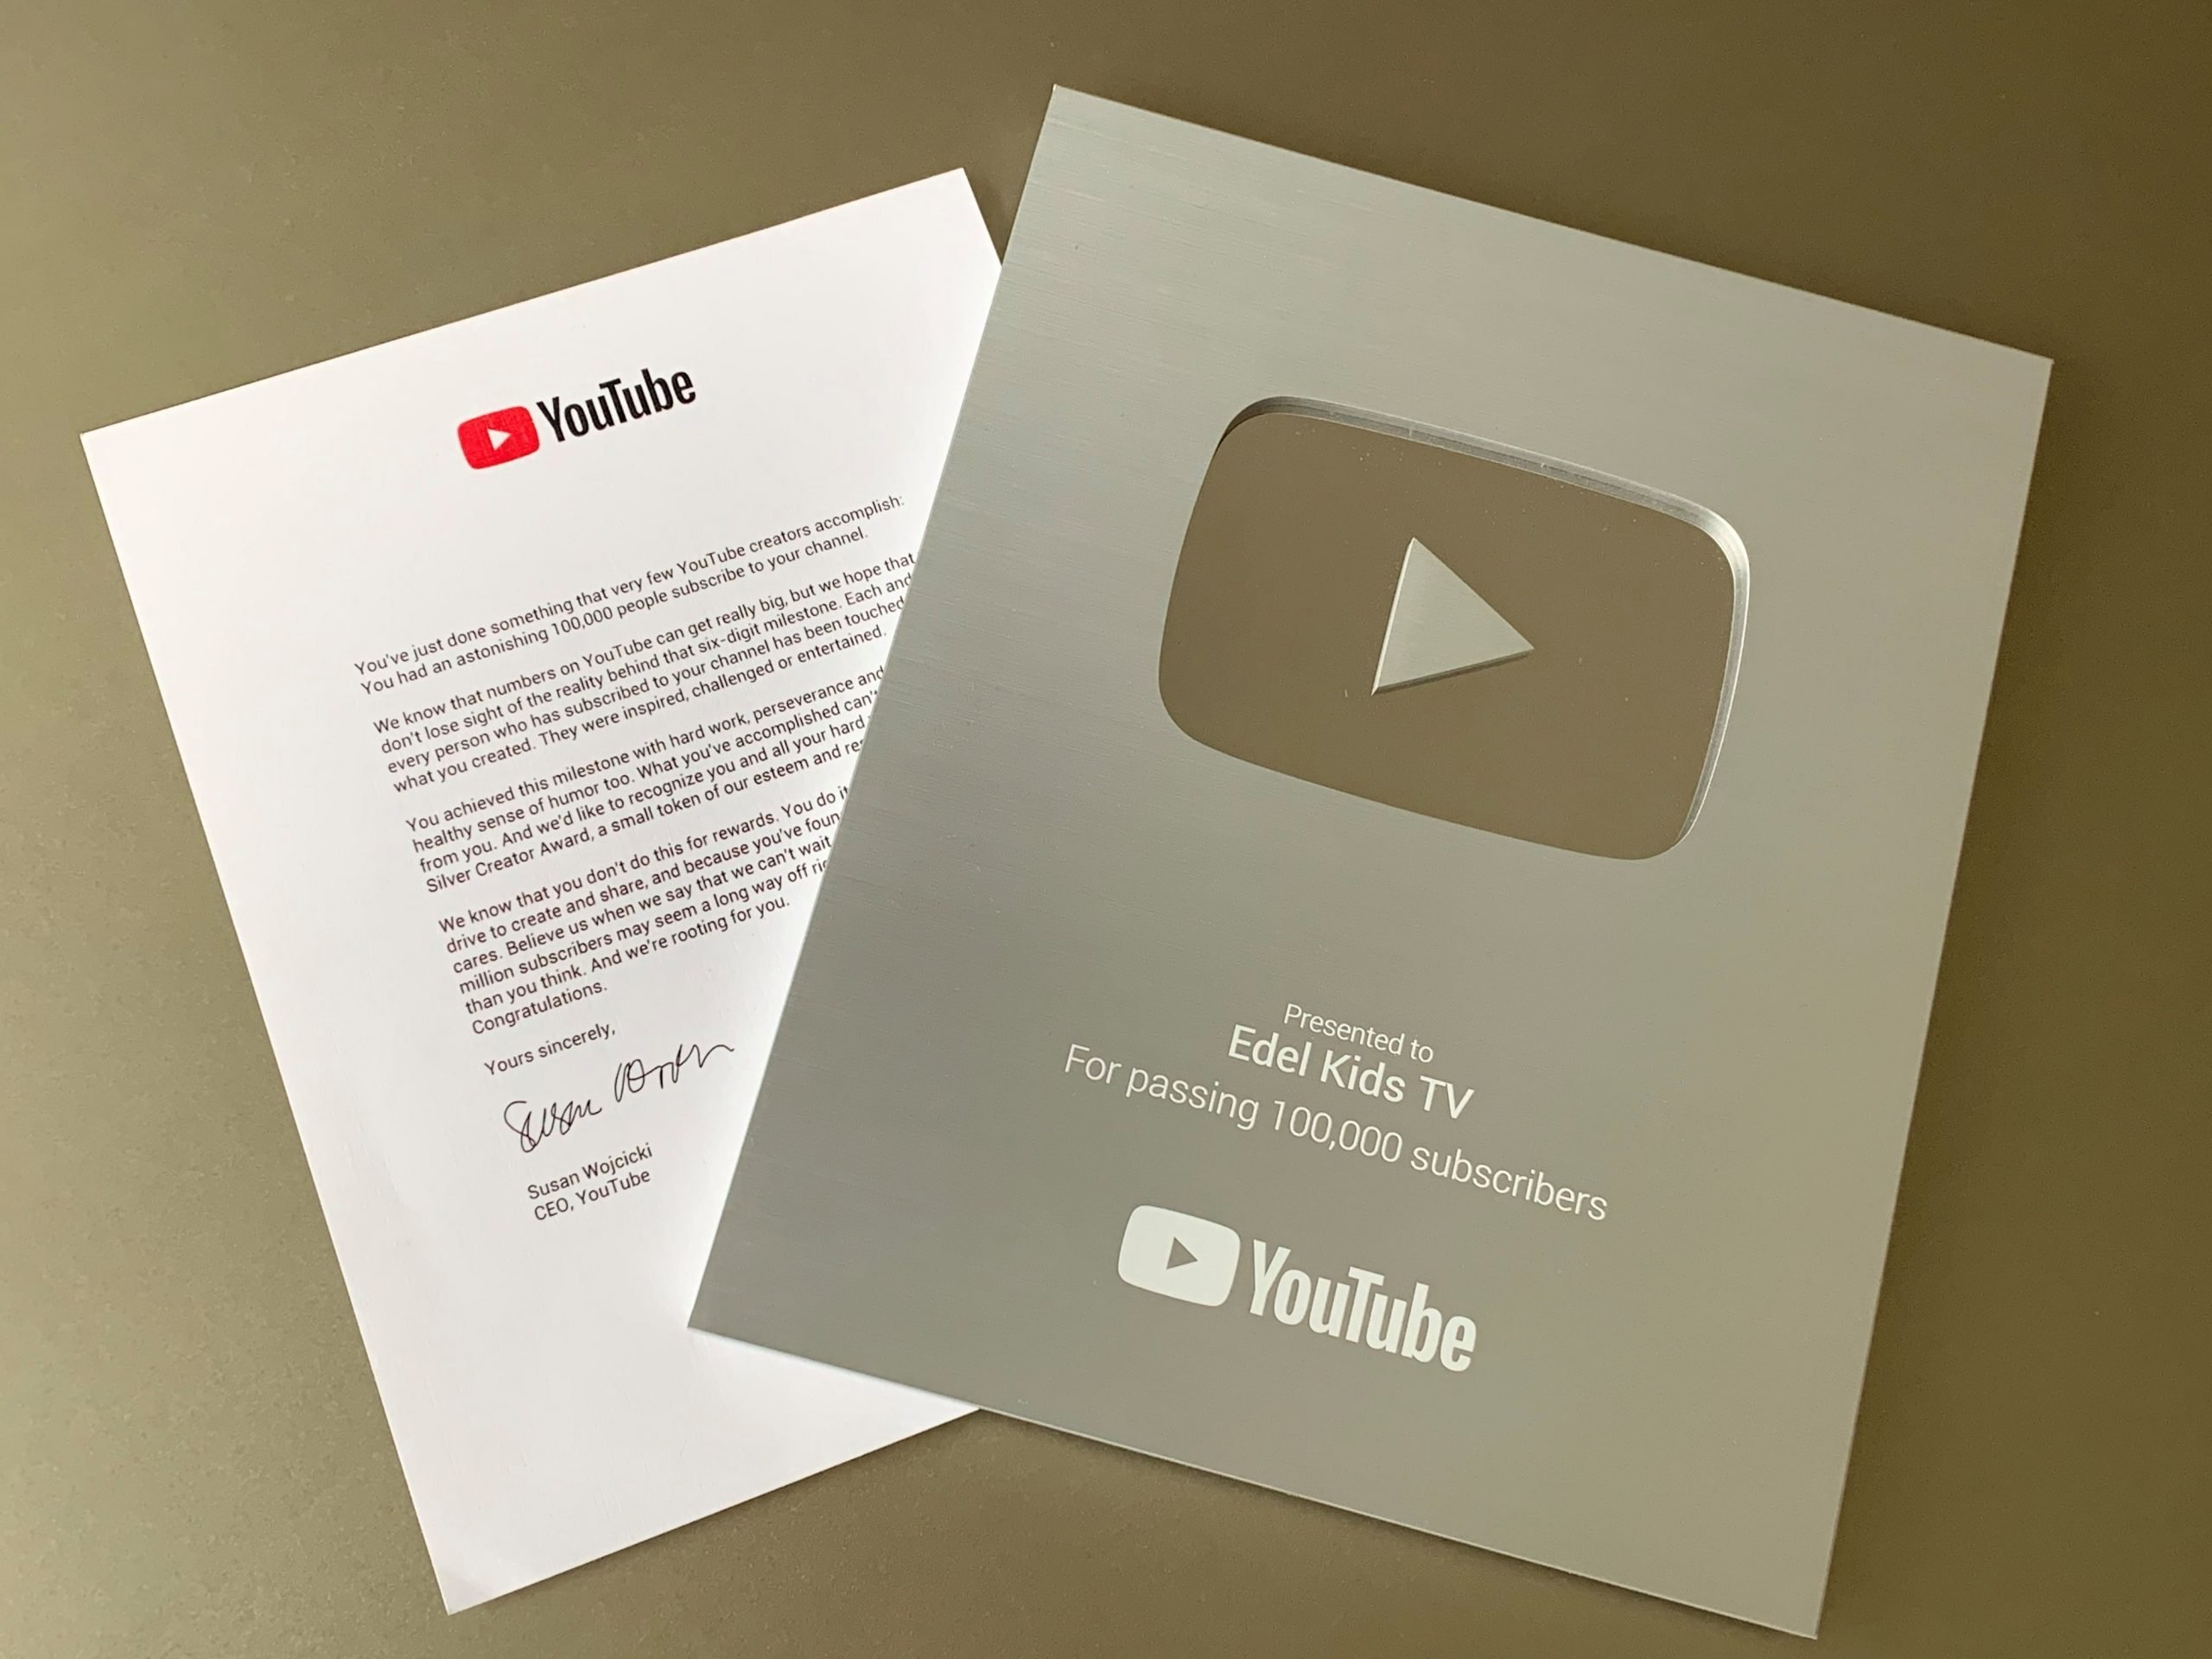 YouTube Play-Button Edel Kids